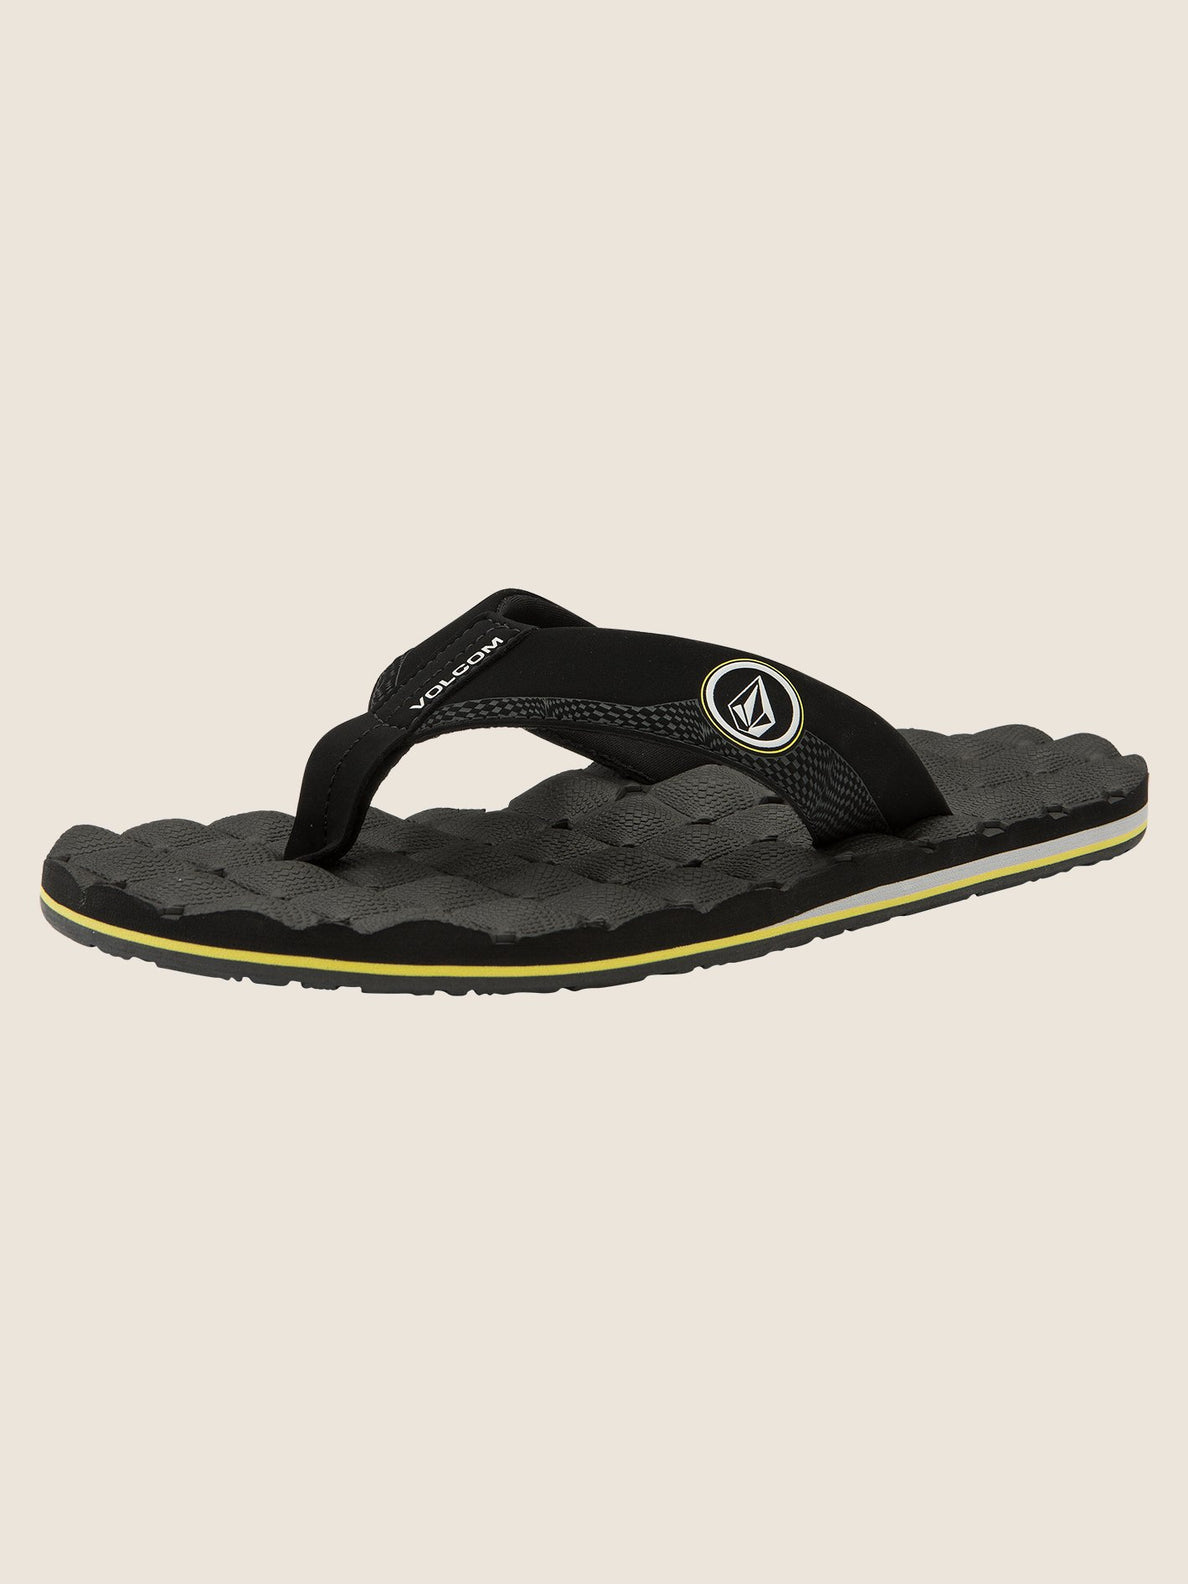 Recliner Sandals In Sulfur Black, Back View